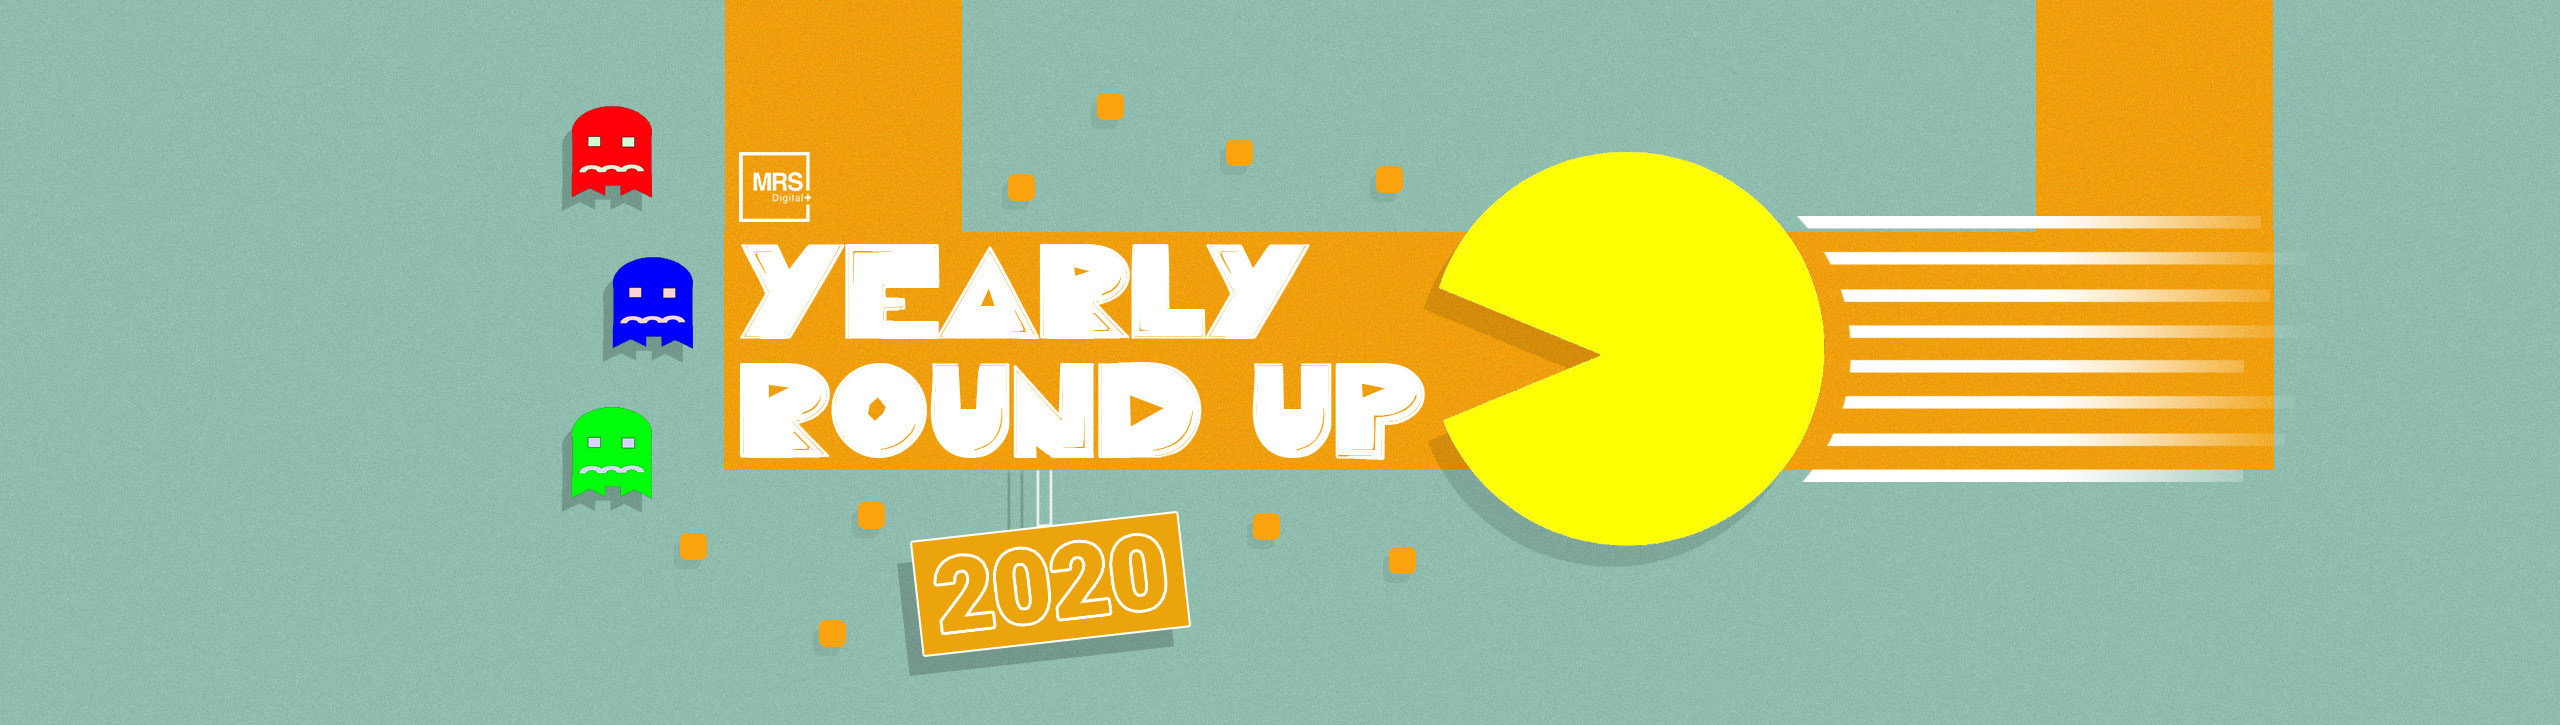 Our End-of-Year Roundup 2020